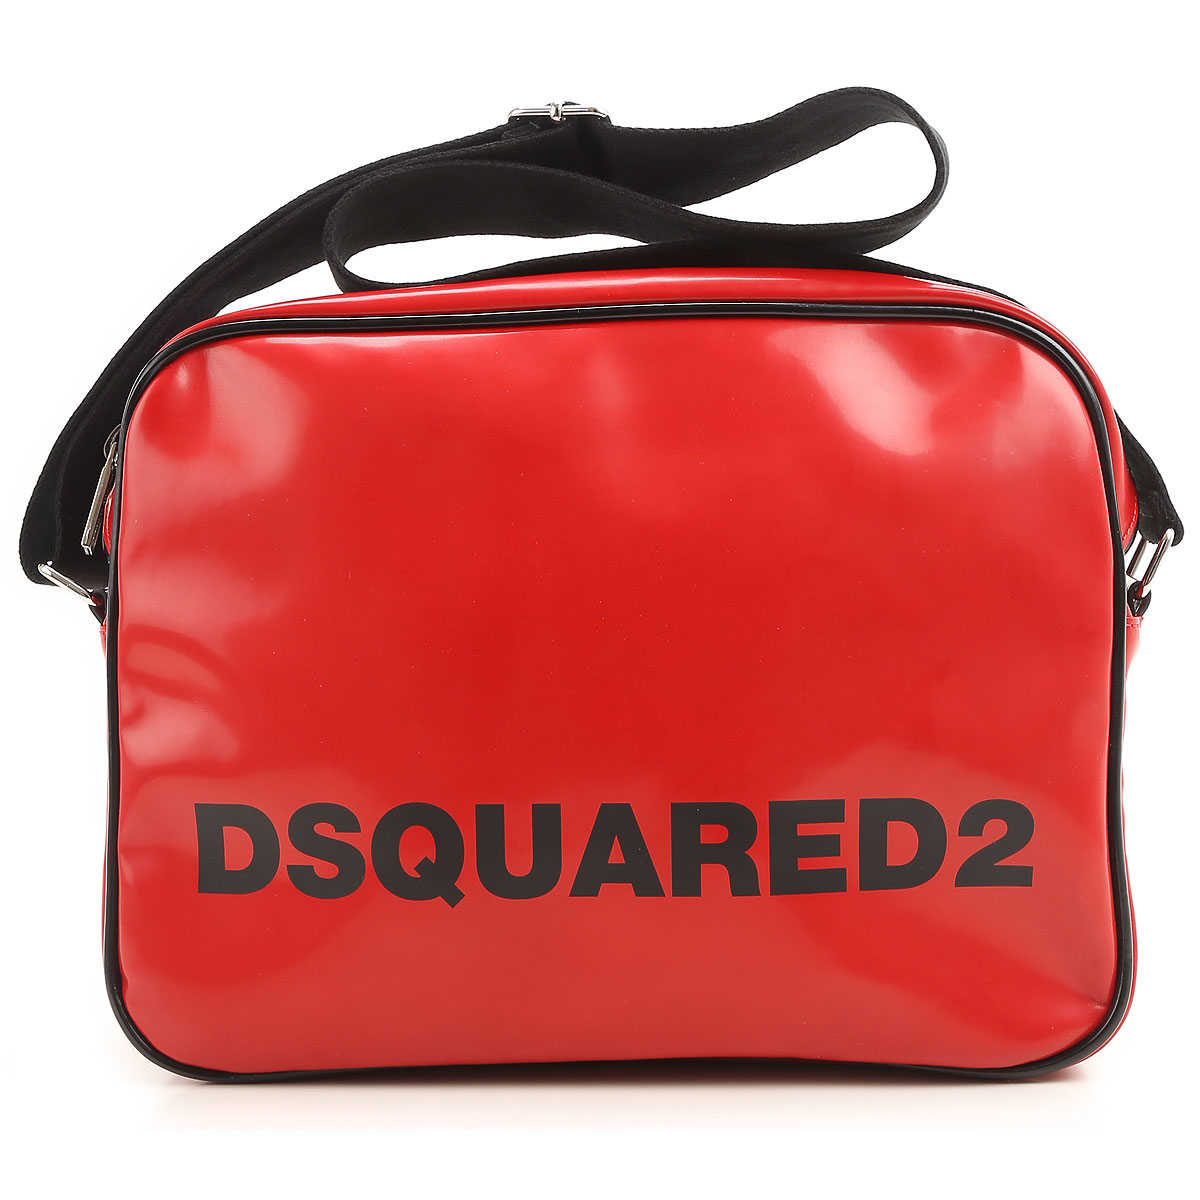 Dsquared2 Briefcases On Sale in Outlet